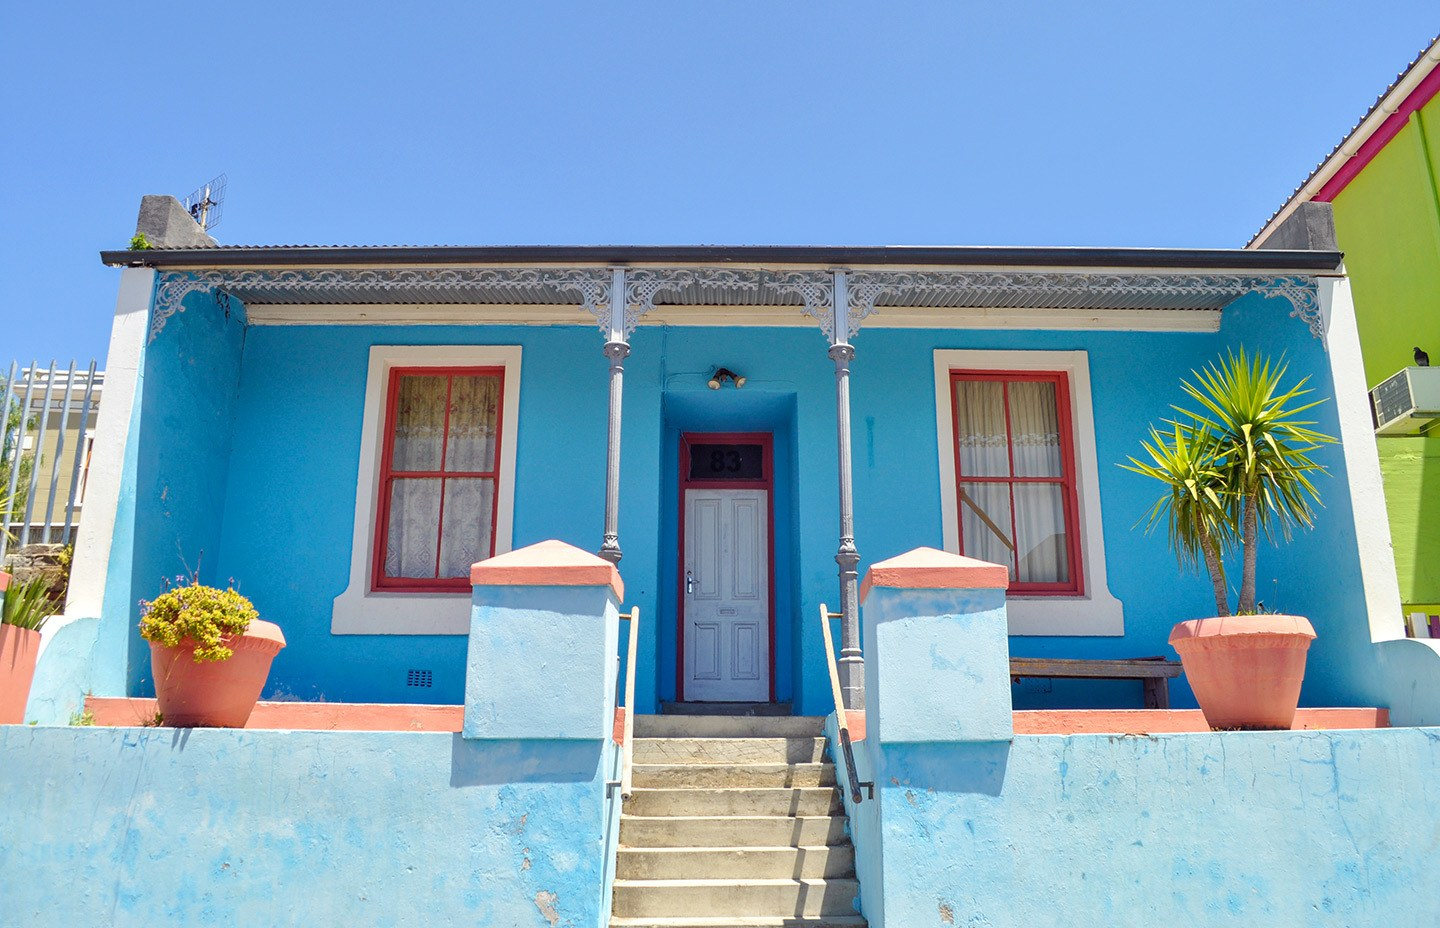 Colourful houses in the Bo Kaap neighbourhood of Cape Town